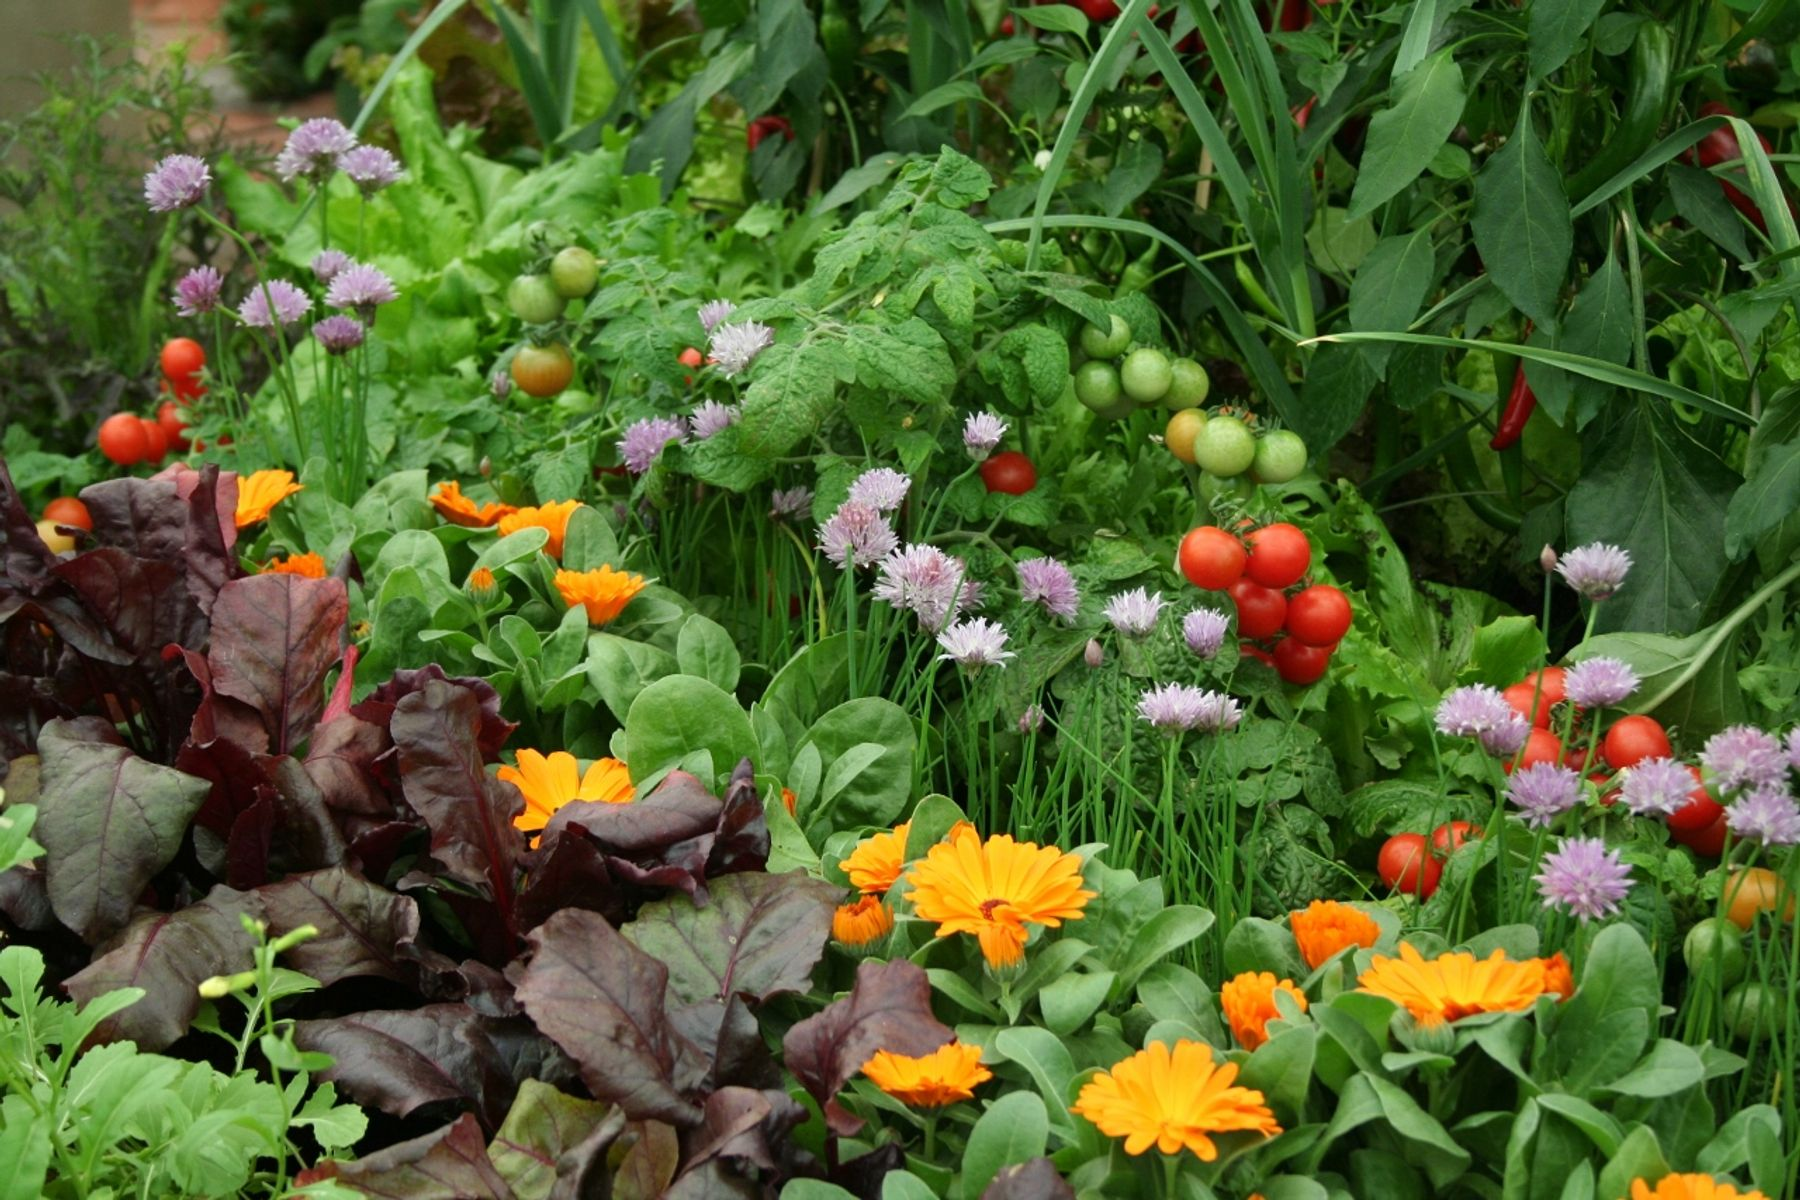 Companion Planting How To Deter Pests And Encourage Beneficial Insects Gardening